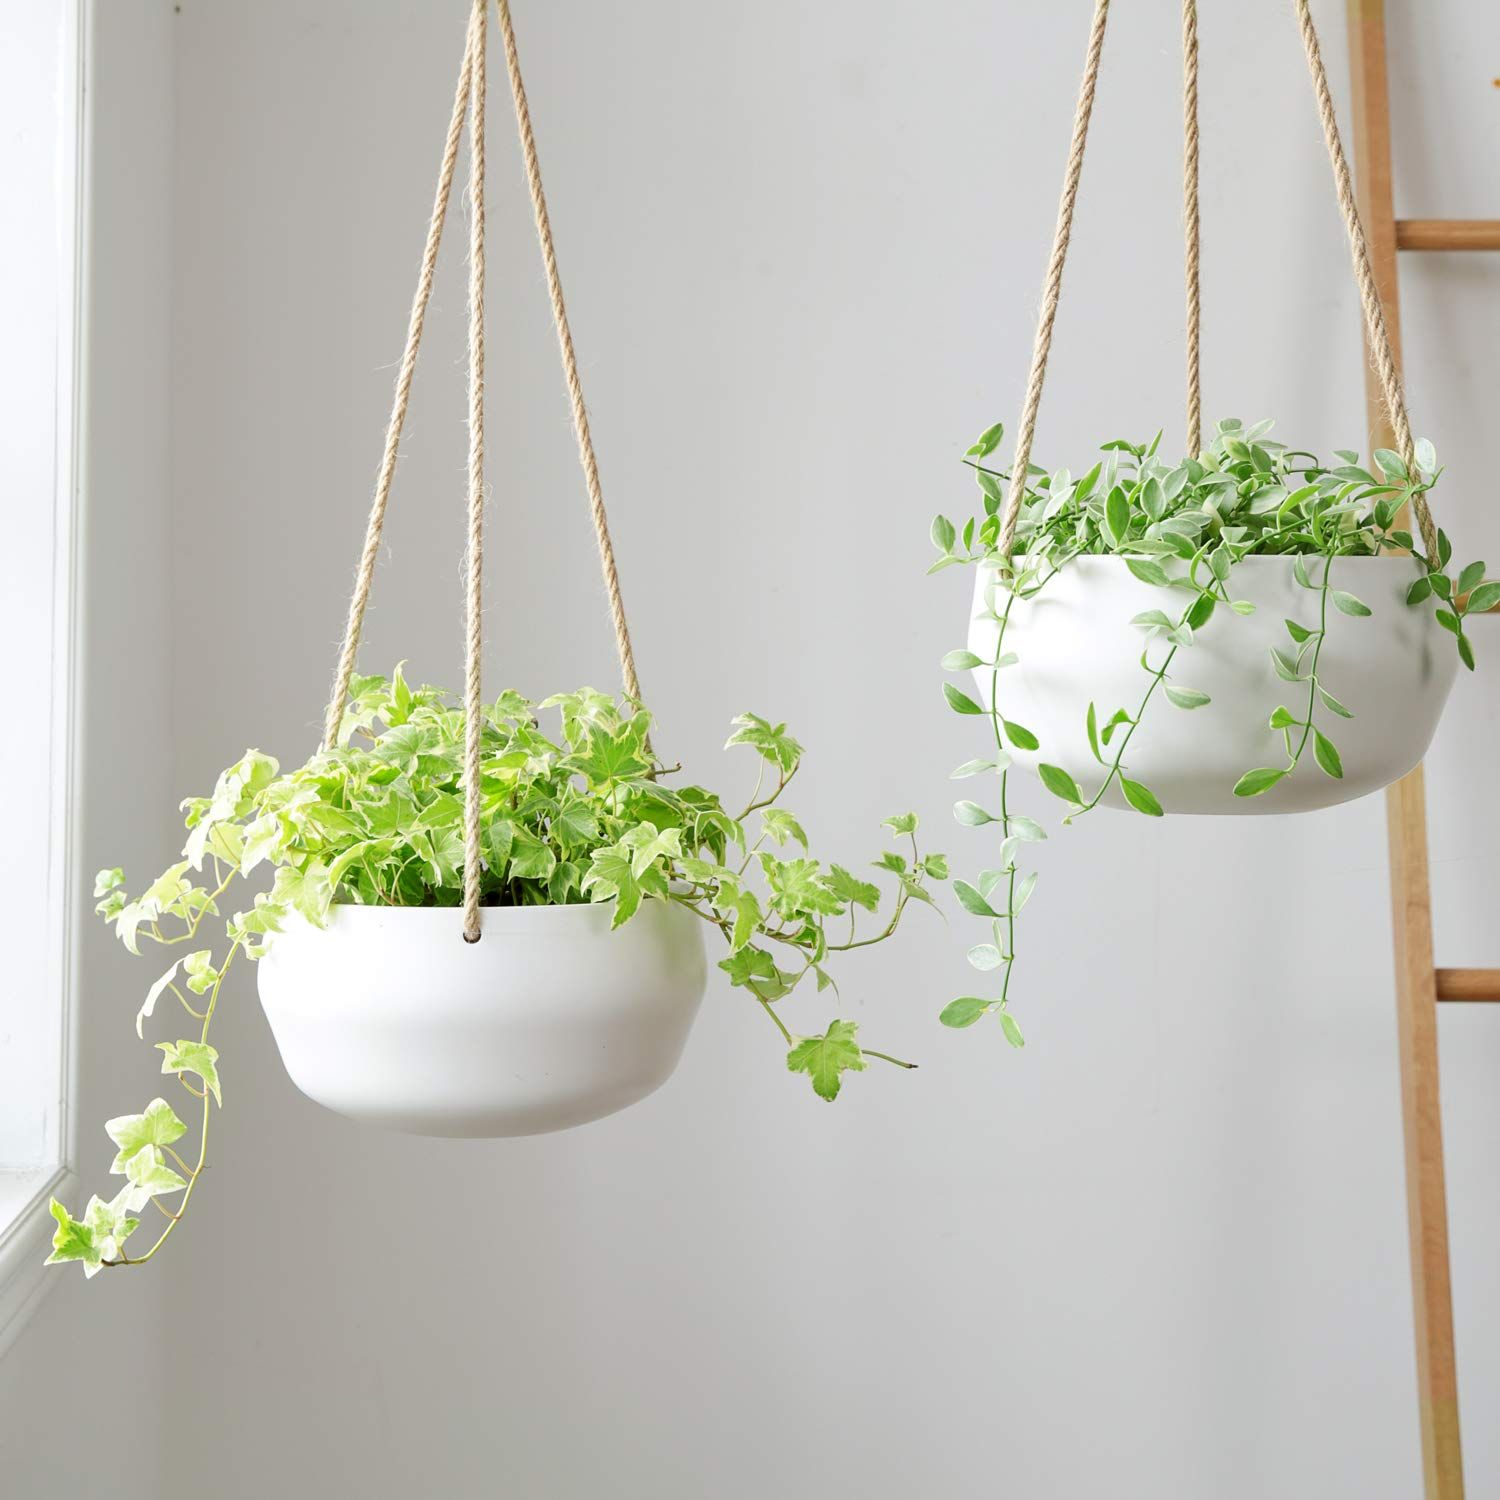 Hanging Plant Holder Rope Hanger For Plants Macrame Plant Hanger Boho Bohemian Home Decor Indoor Hanging Planter Shelf Macrame Plant Hangers Hanging Plant